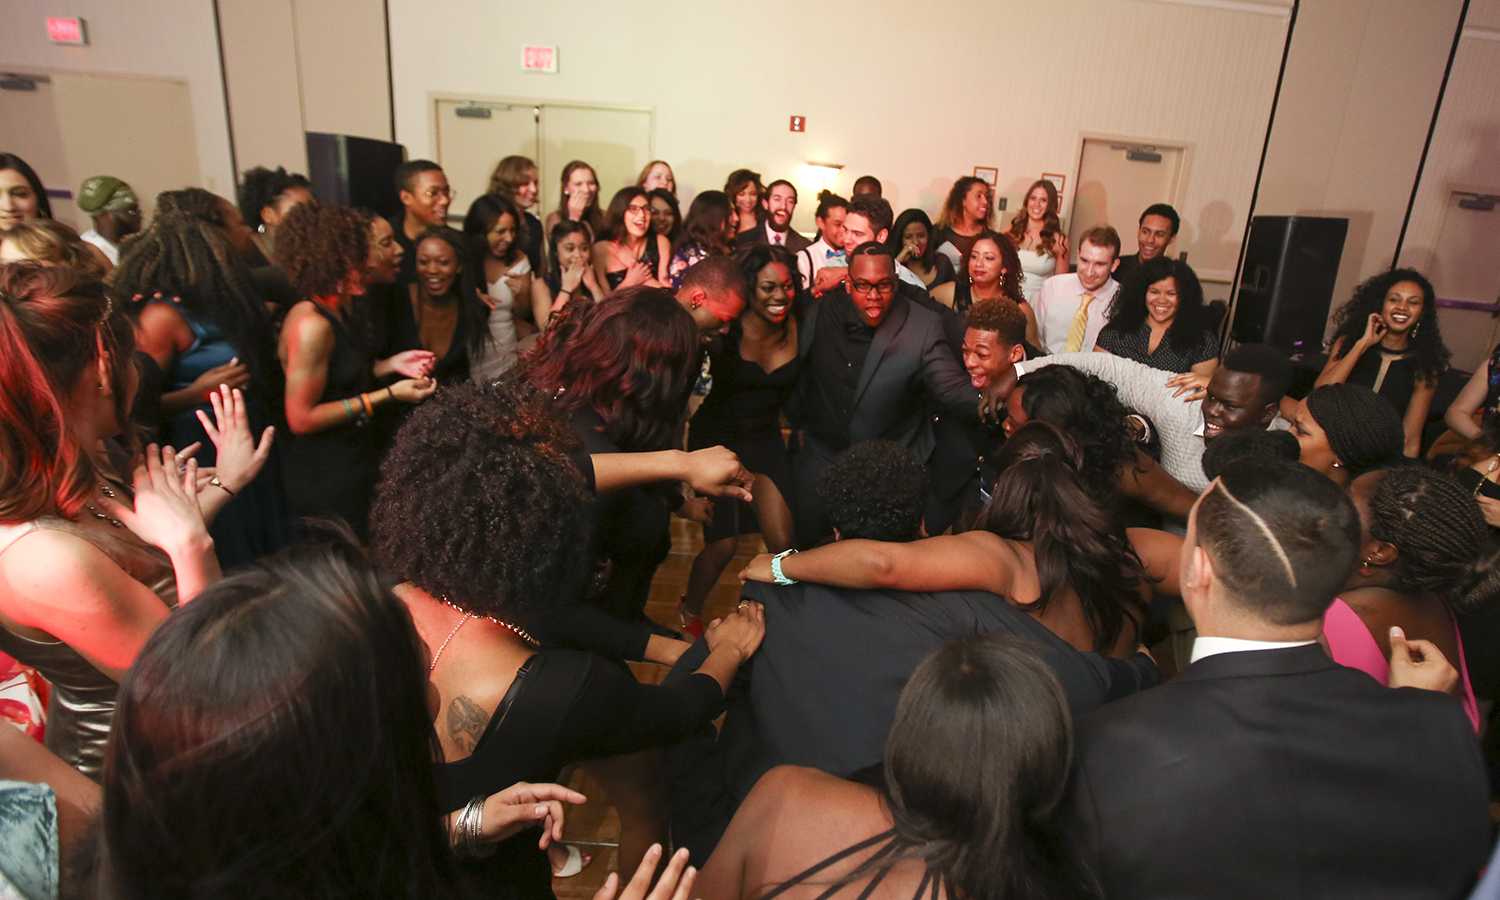 Students dance at the Ramada Geneva Lakefront during the annual Charity Ball. Members of Sankofa raised more than $2,000 for scholarships for local high school students.​